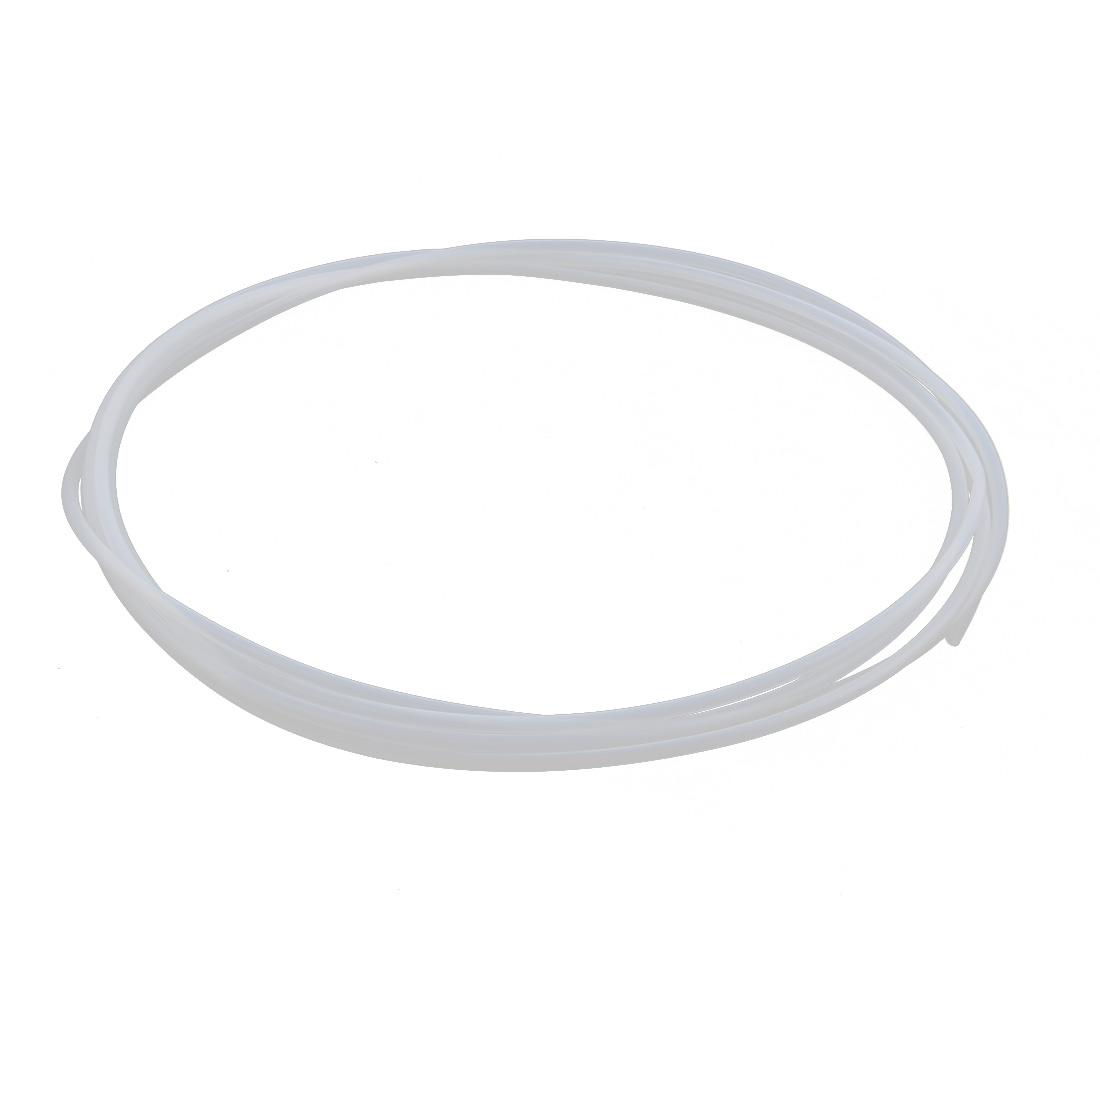 5.88mmx5.28mm PTFE Resistant High Temperature Transparent Tubing 5Meters 16.4Ft 4L